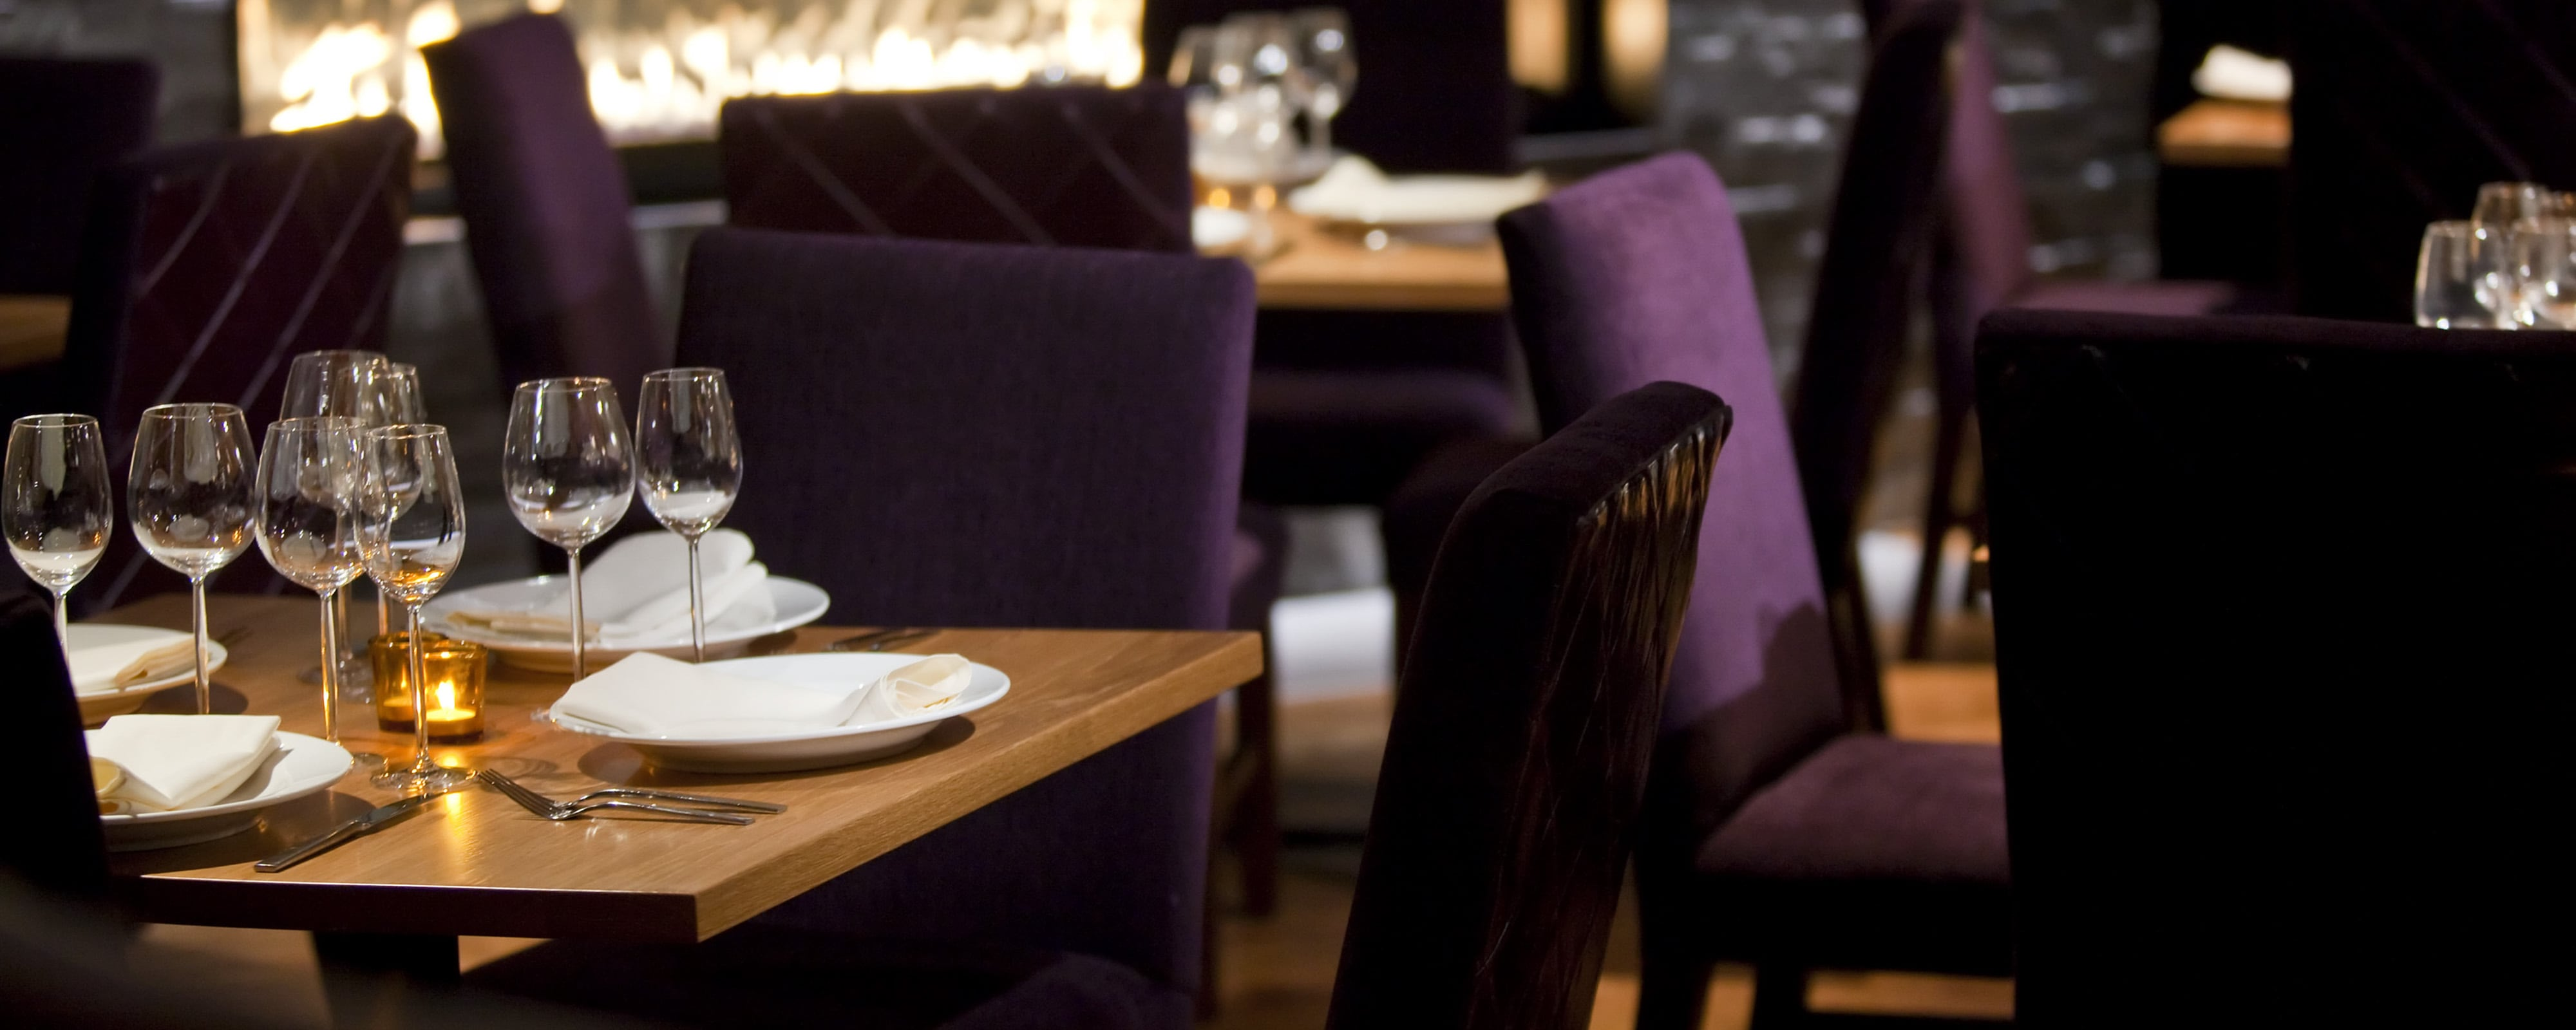 Hotel Restaurants at Renaissance business hotels